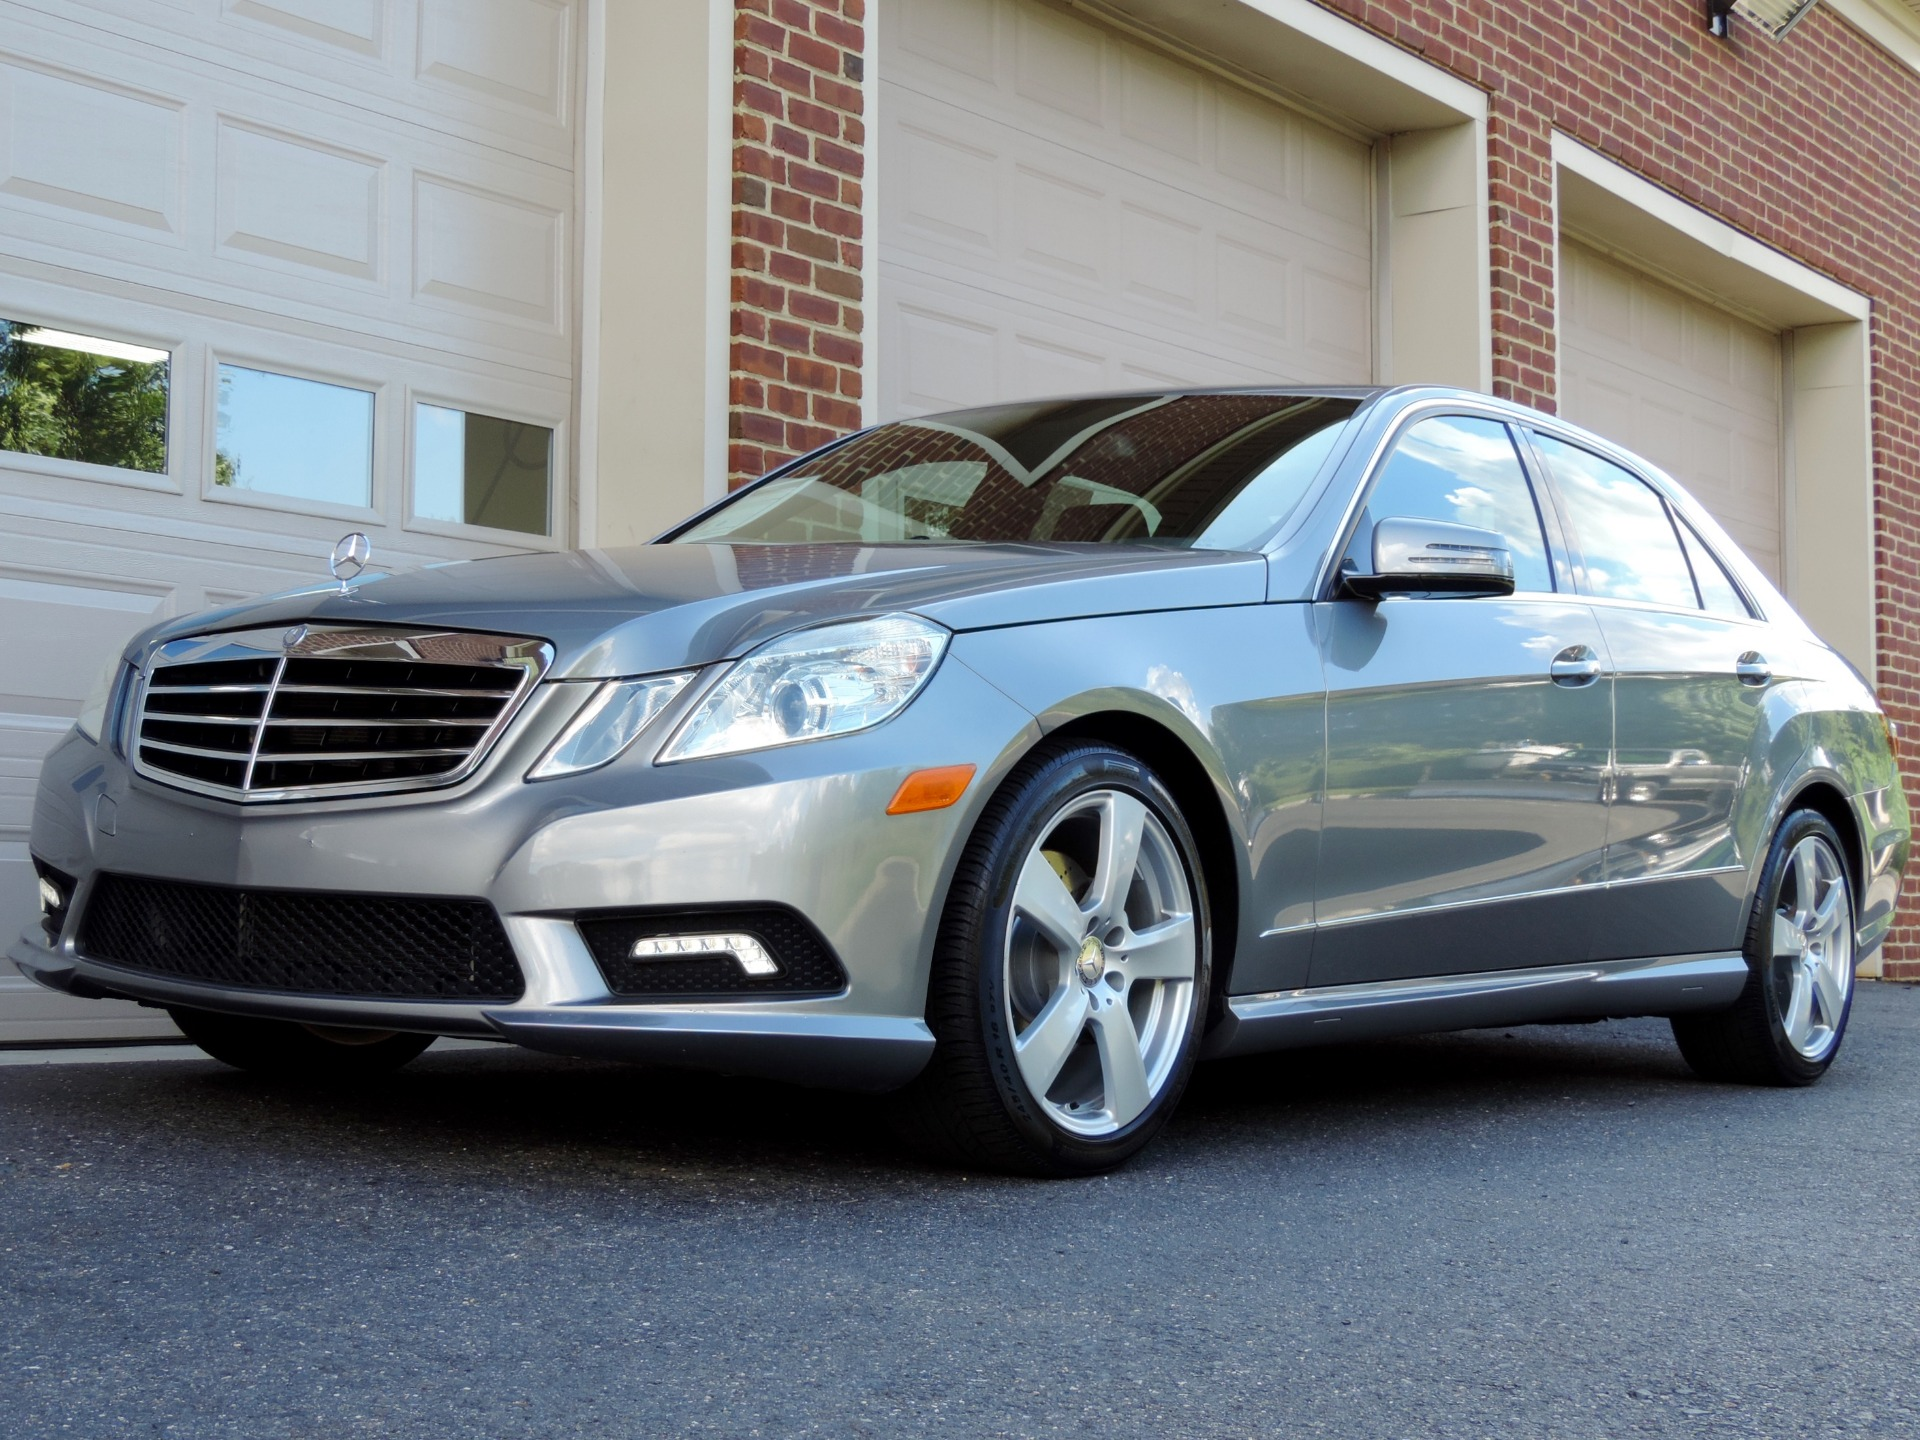 2011 mercedes benz e class e 350 sport 4matic stock 306646 for sale near edgewater park nj. Black Bedroom Furniture Sets. Home Design Ideas